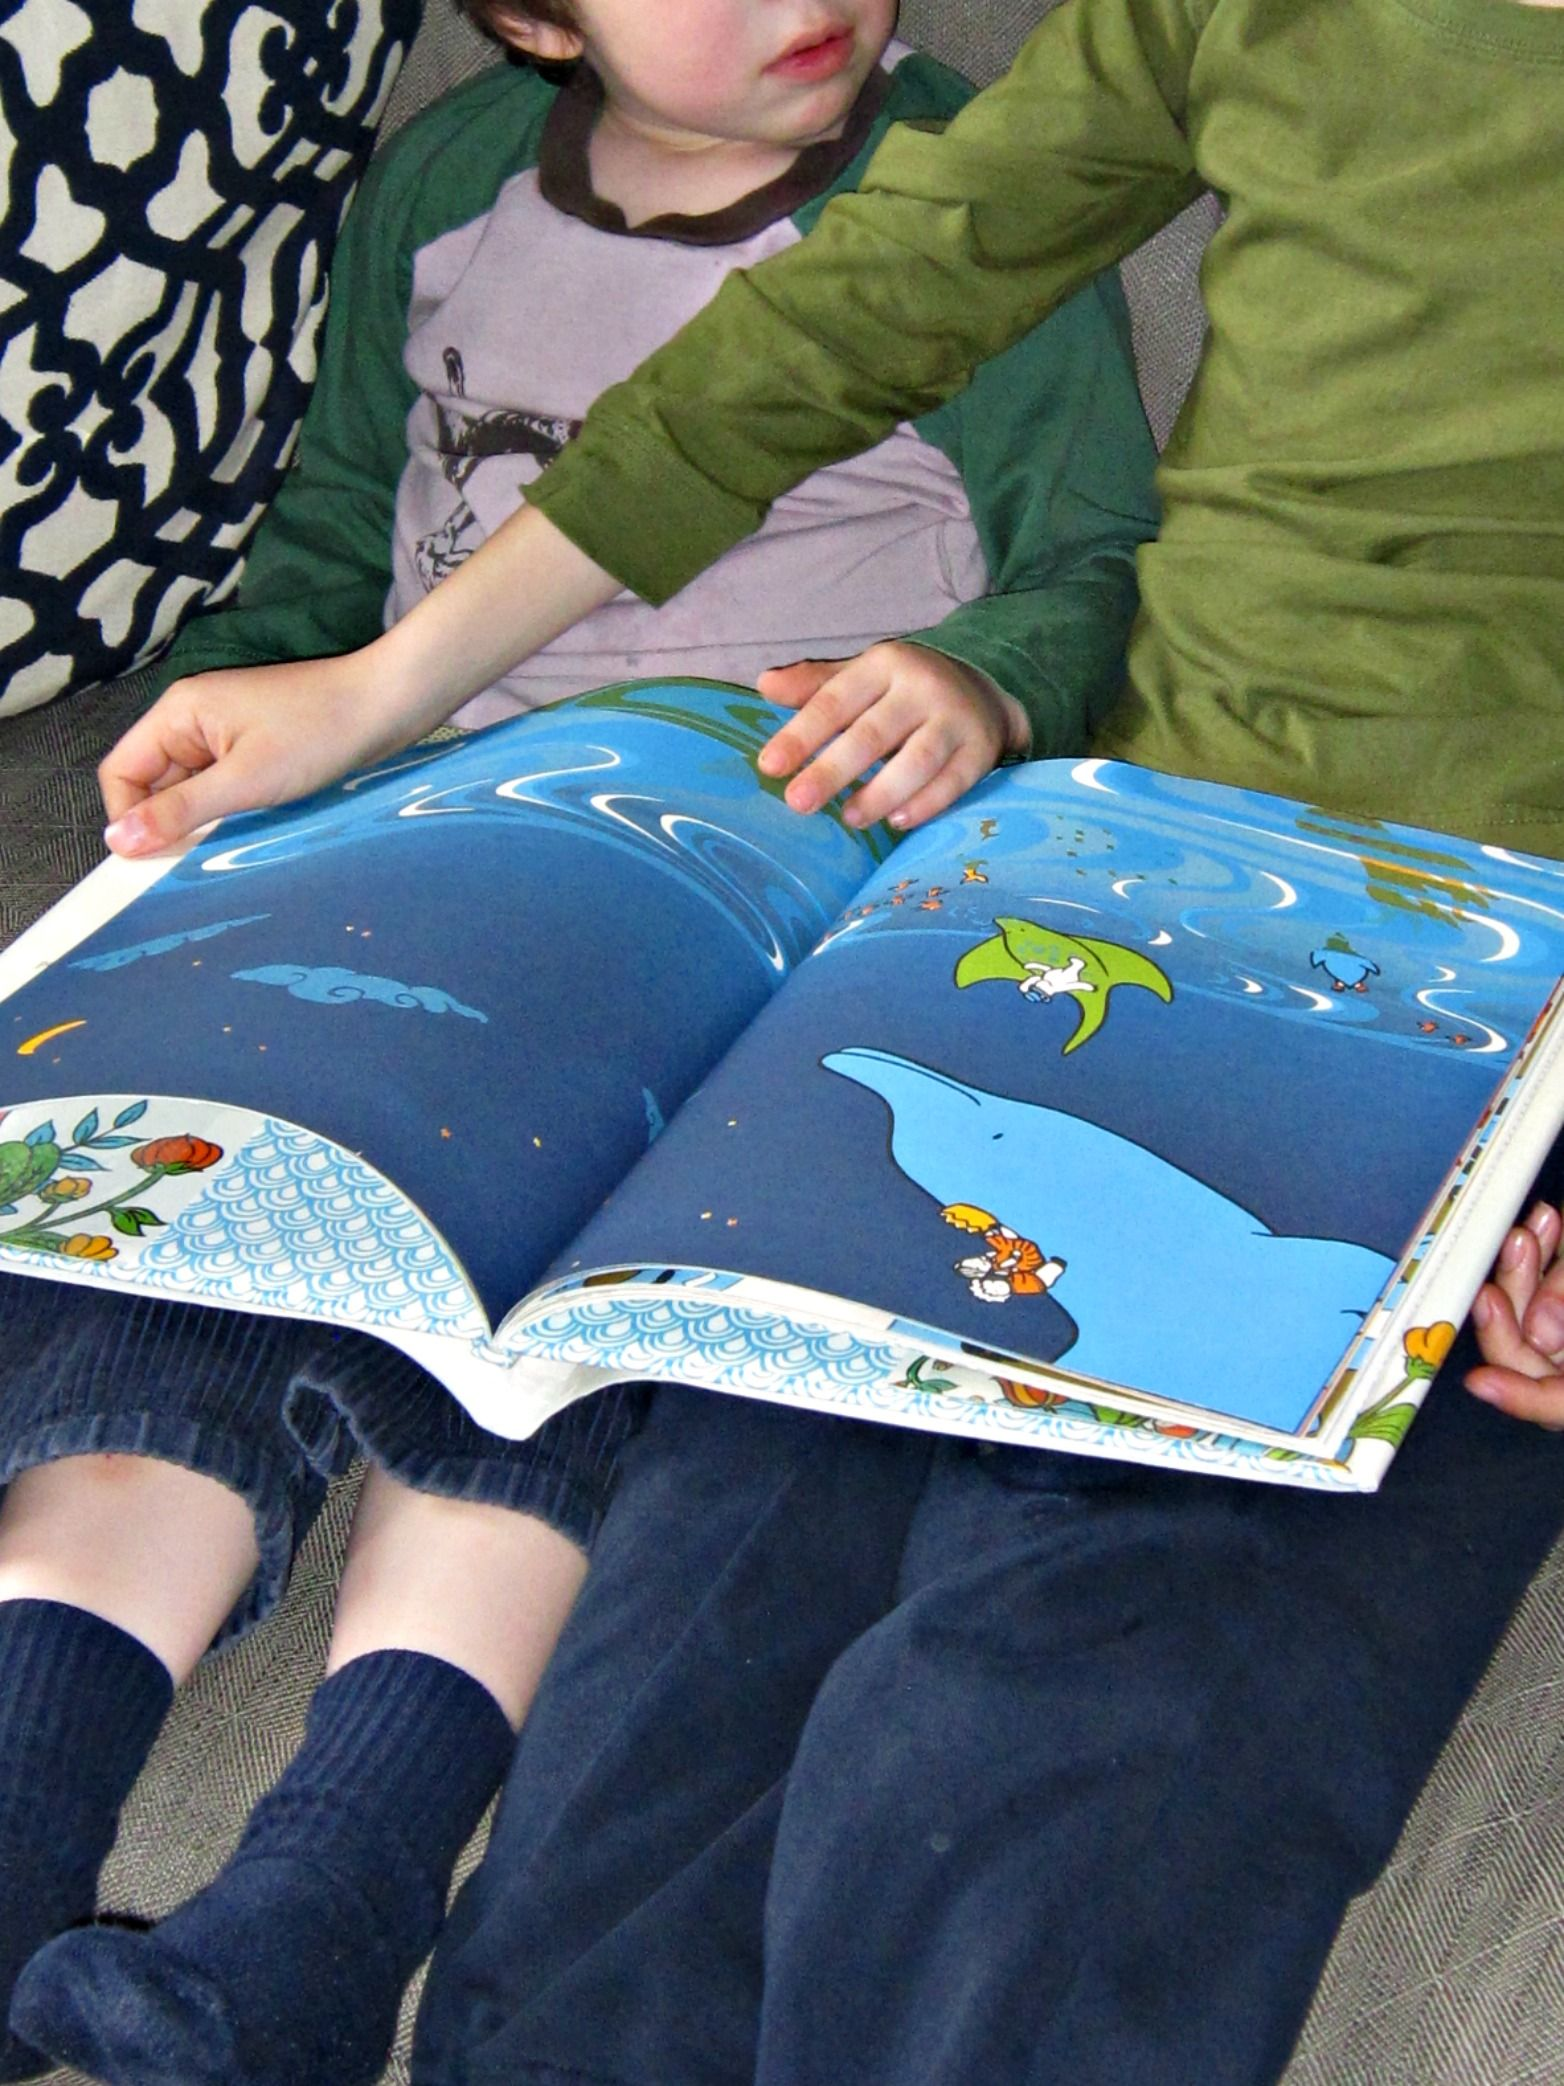 Tips for parents who are hesitant to read wordless books to kids. Includes inspiration and loads of questions to ask while reading.